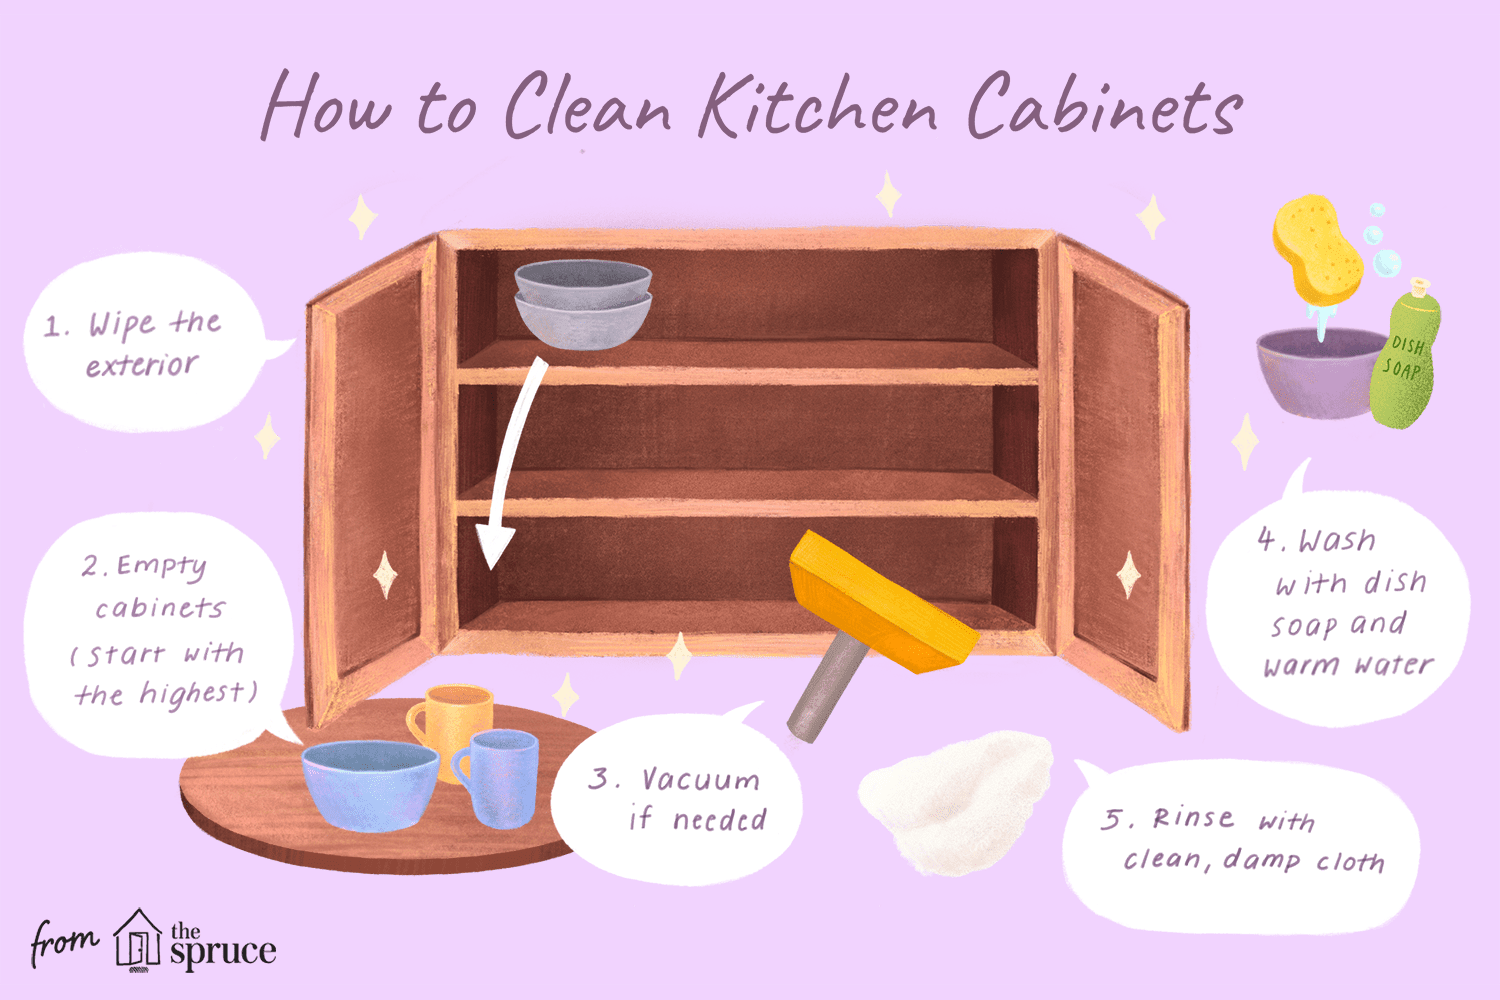 How to Deep Clean Kitchen Cabinets